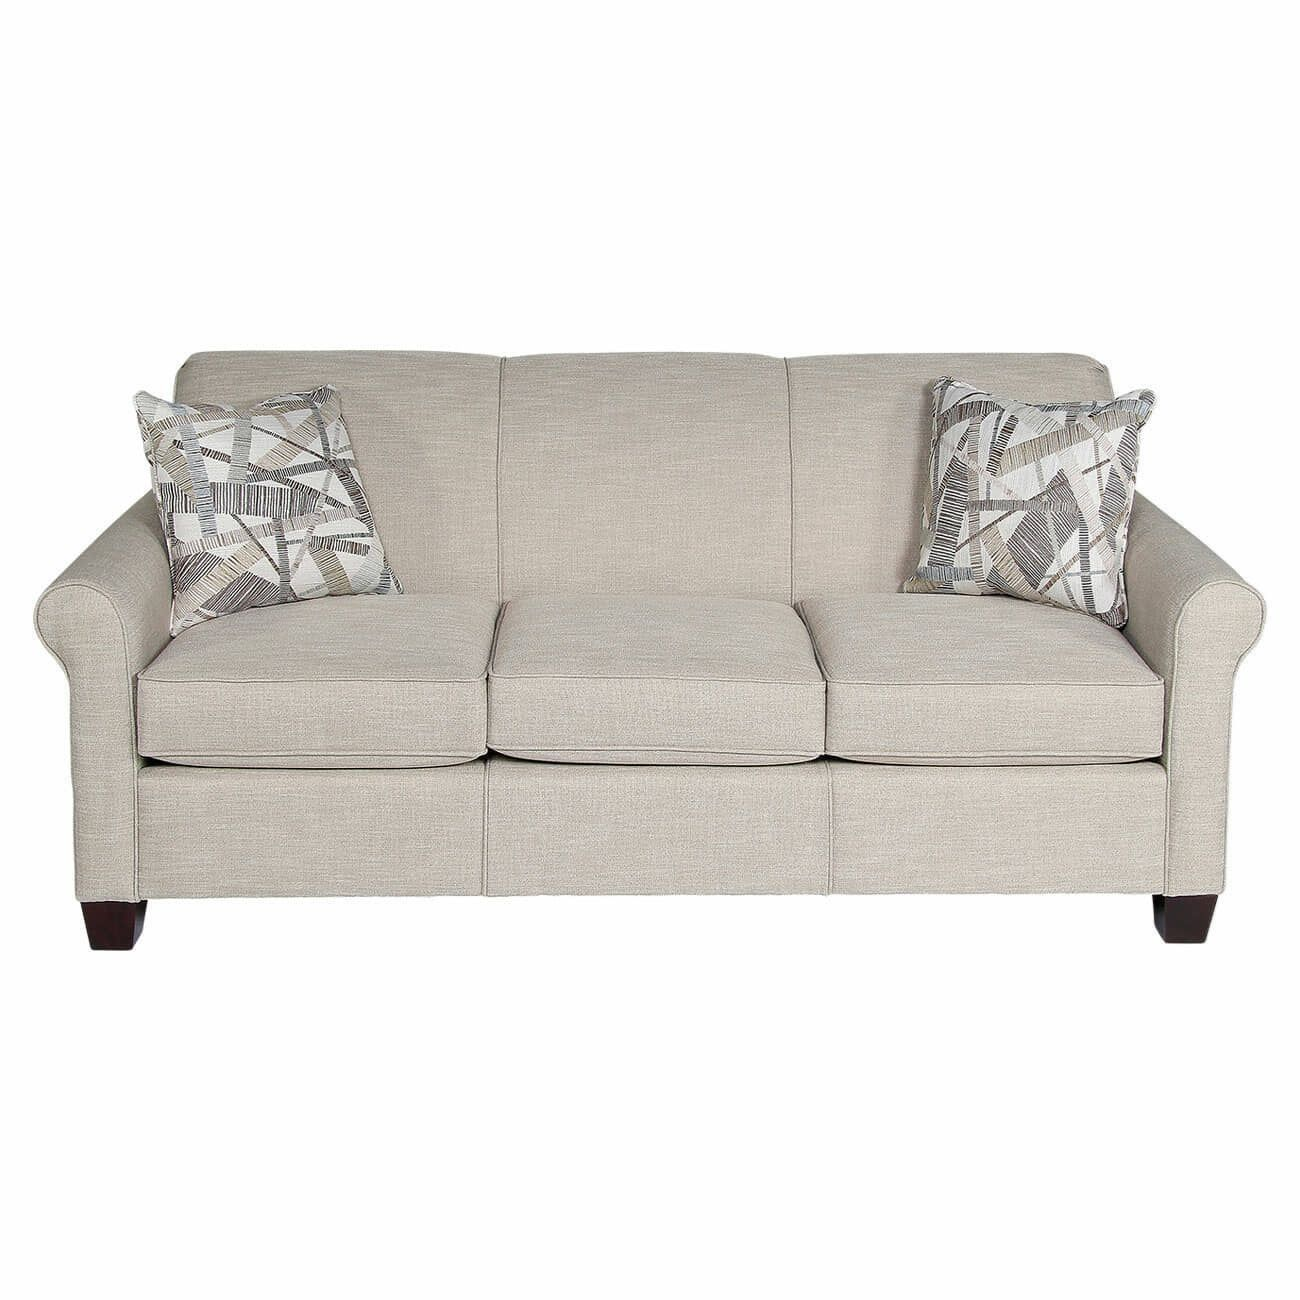 Wondrous Angie Conversation Linen Sofa In 2019 Terri Living Room Pabps2019 Chair Design Images Pabps2019Com